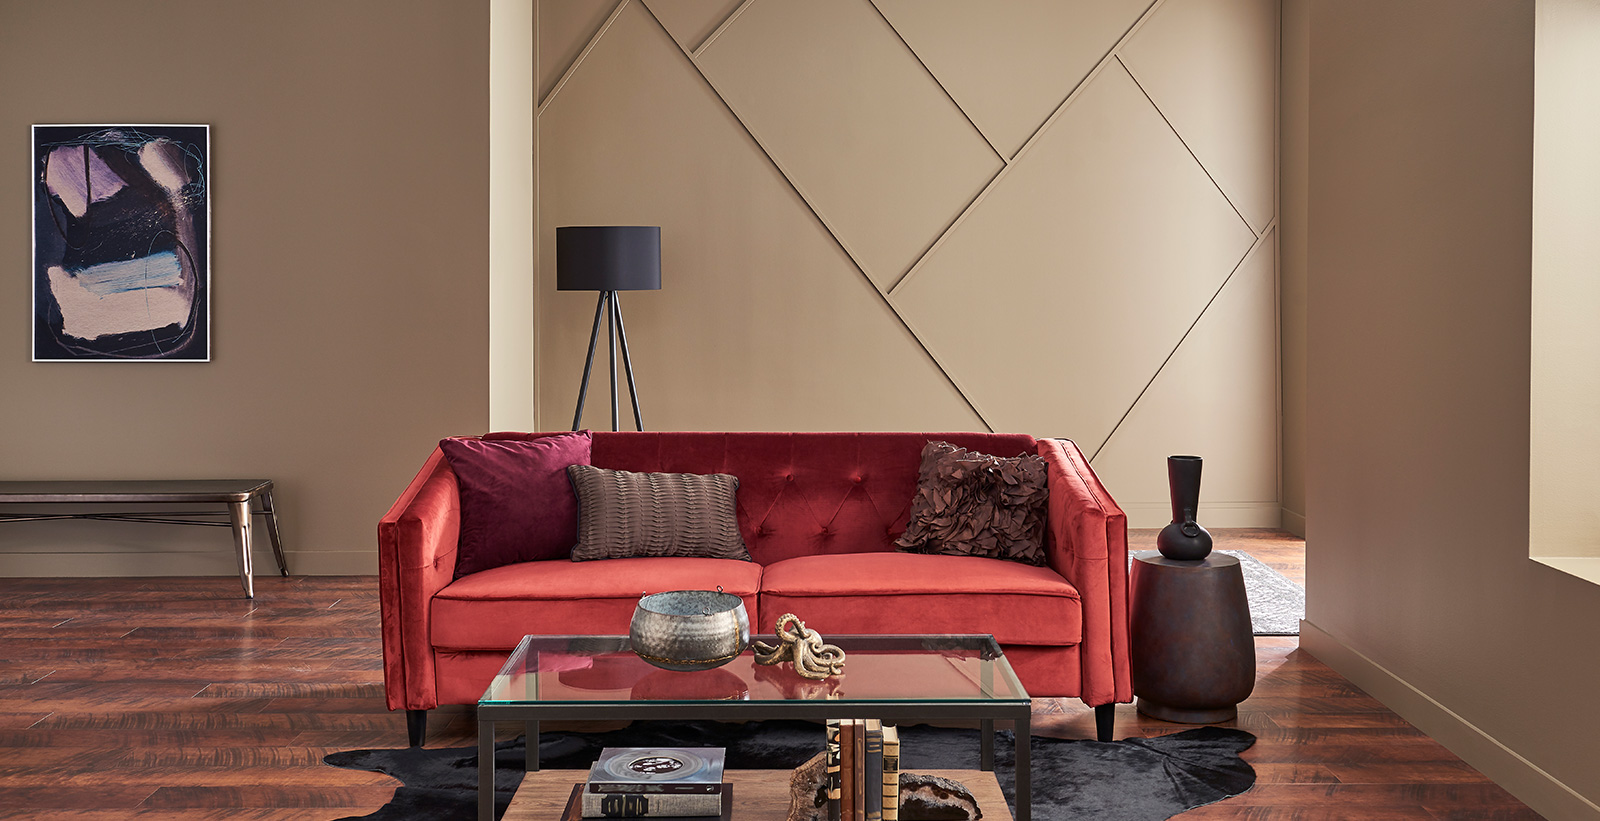 Monochromatic living room with taupe on walls, red tufted couch, glass coffee table, and dark wood flooring